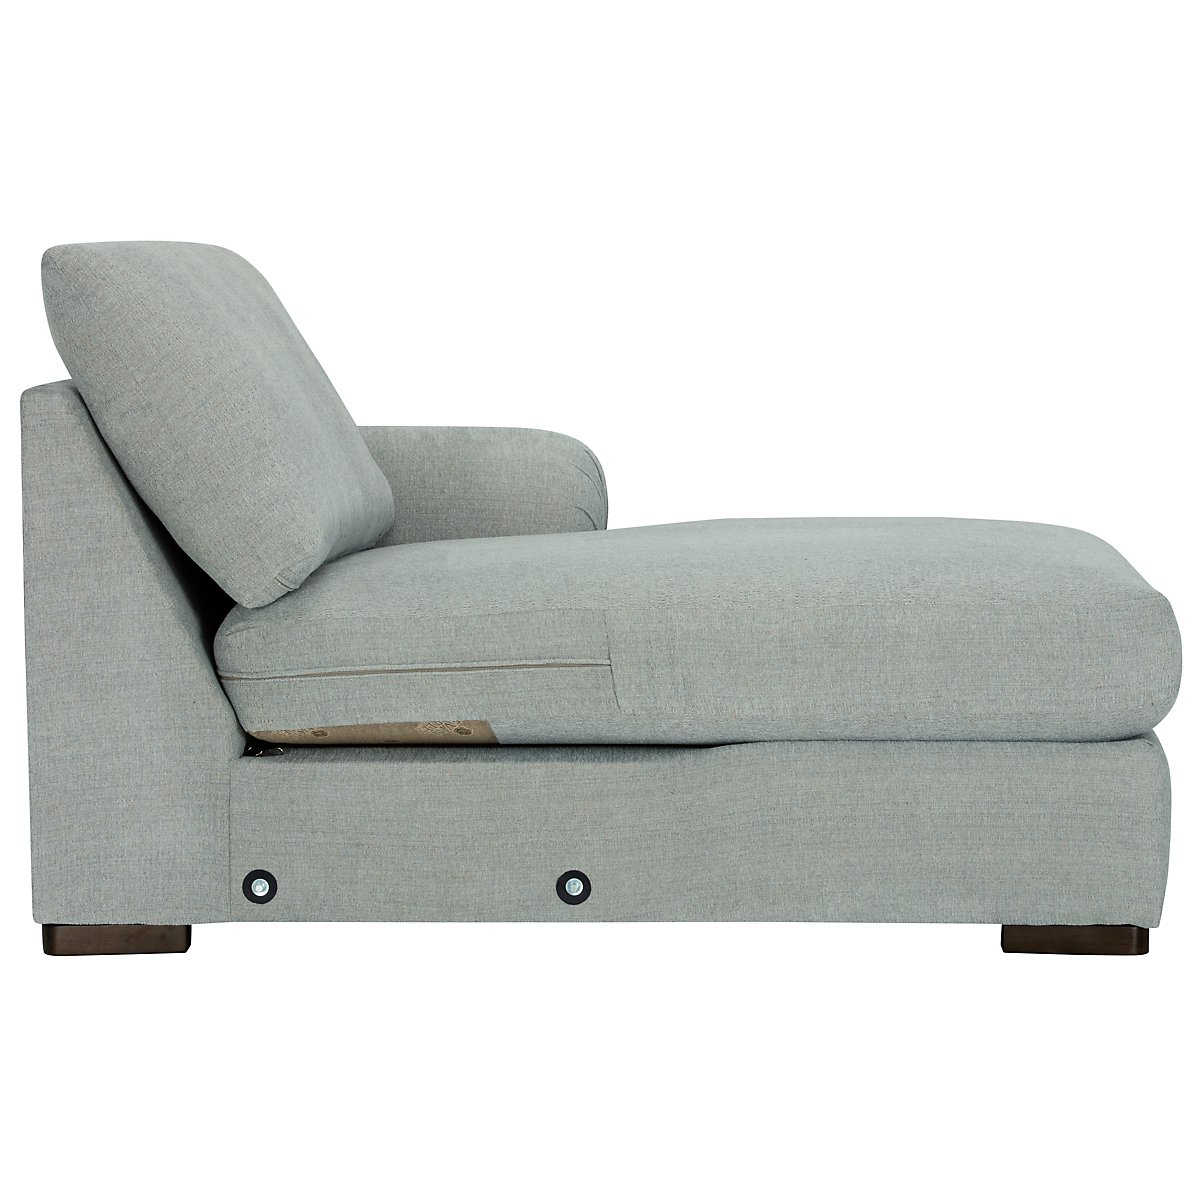 City furniture belair lt blue microfiber right chaise for Blue sectional with chaise